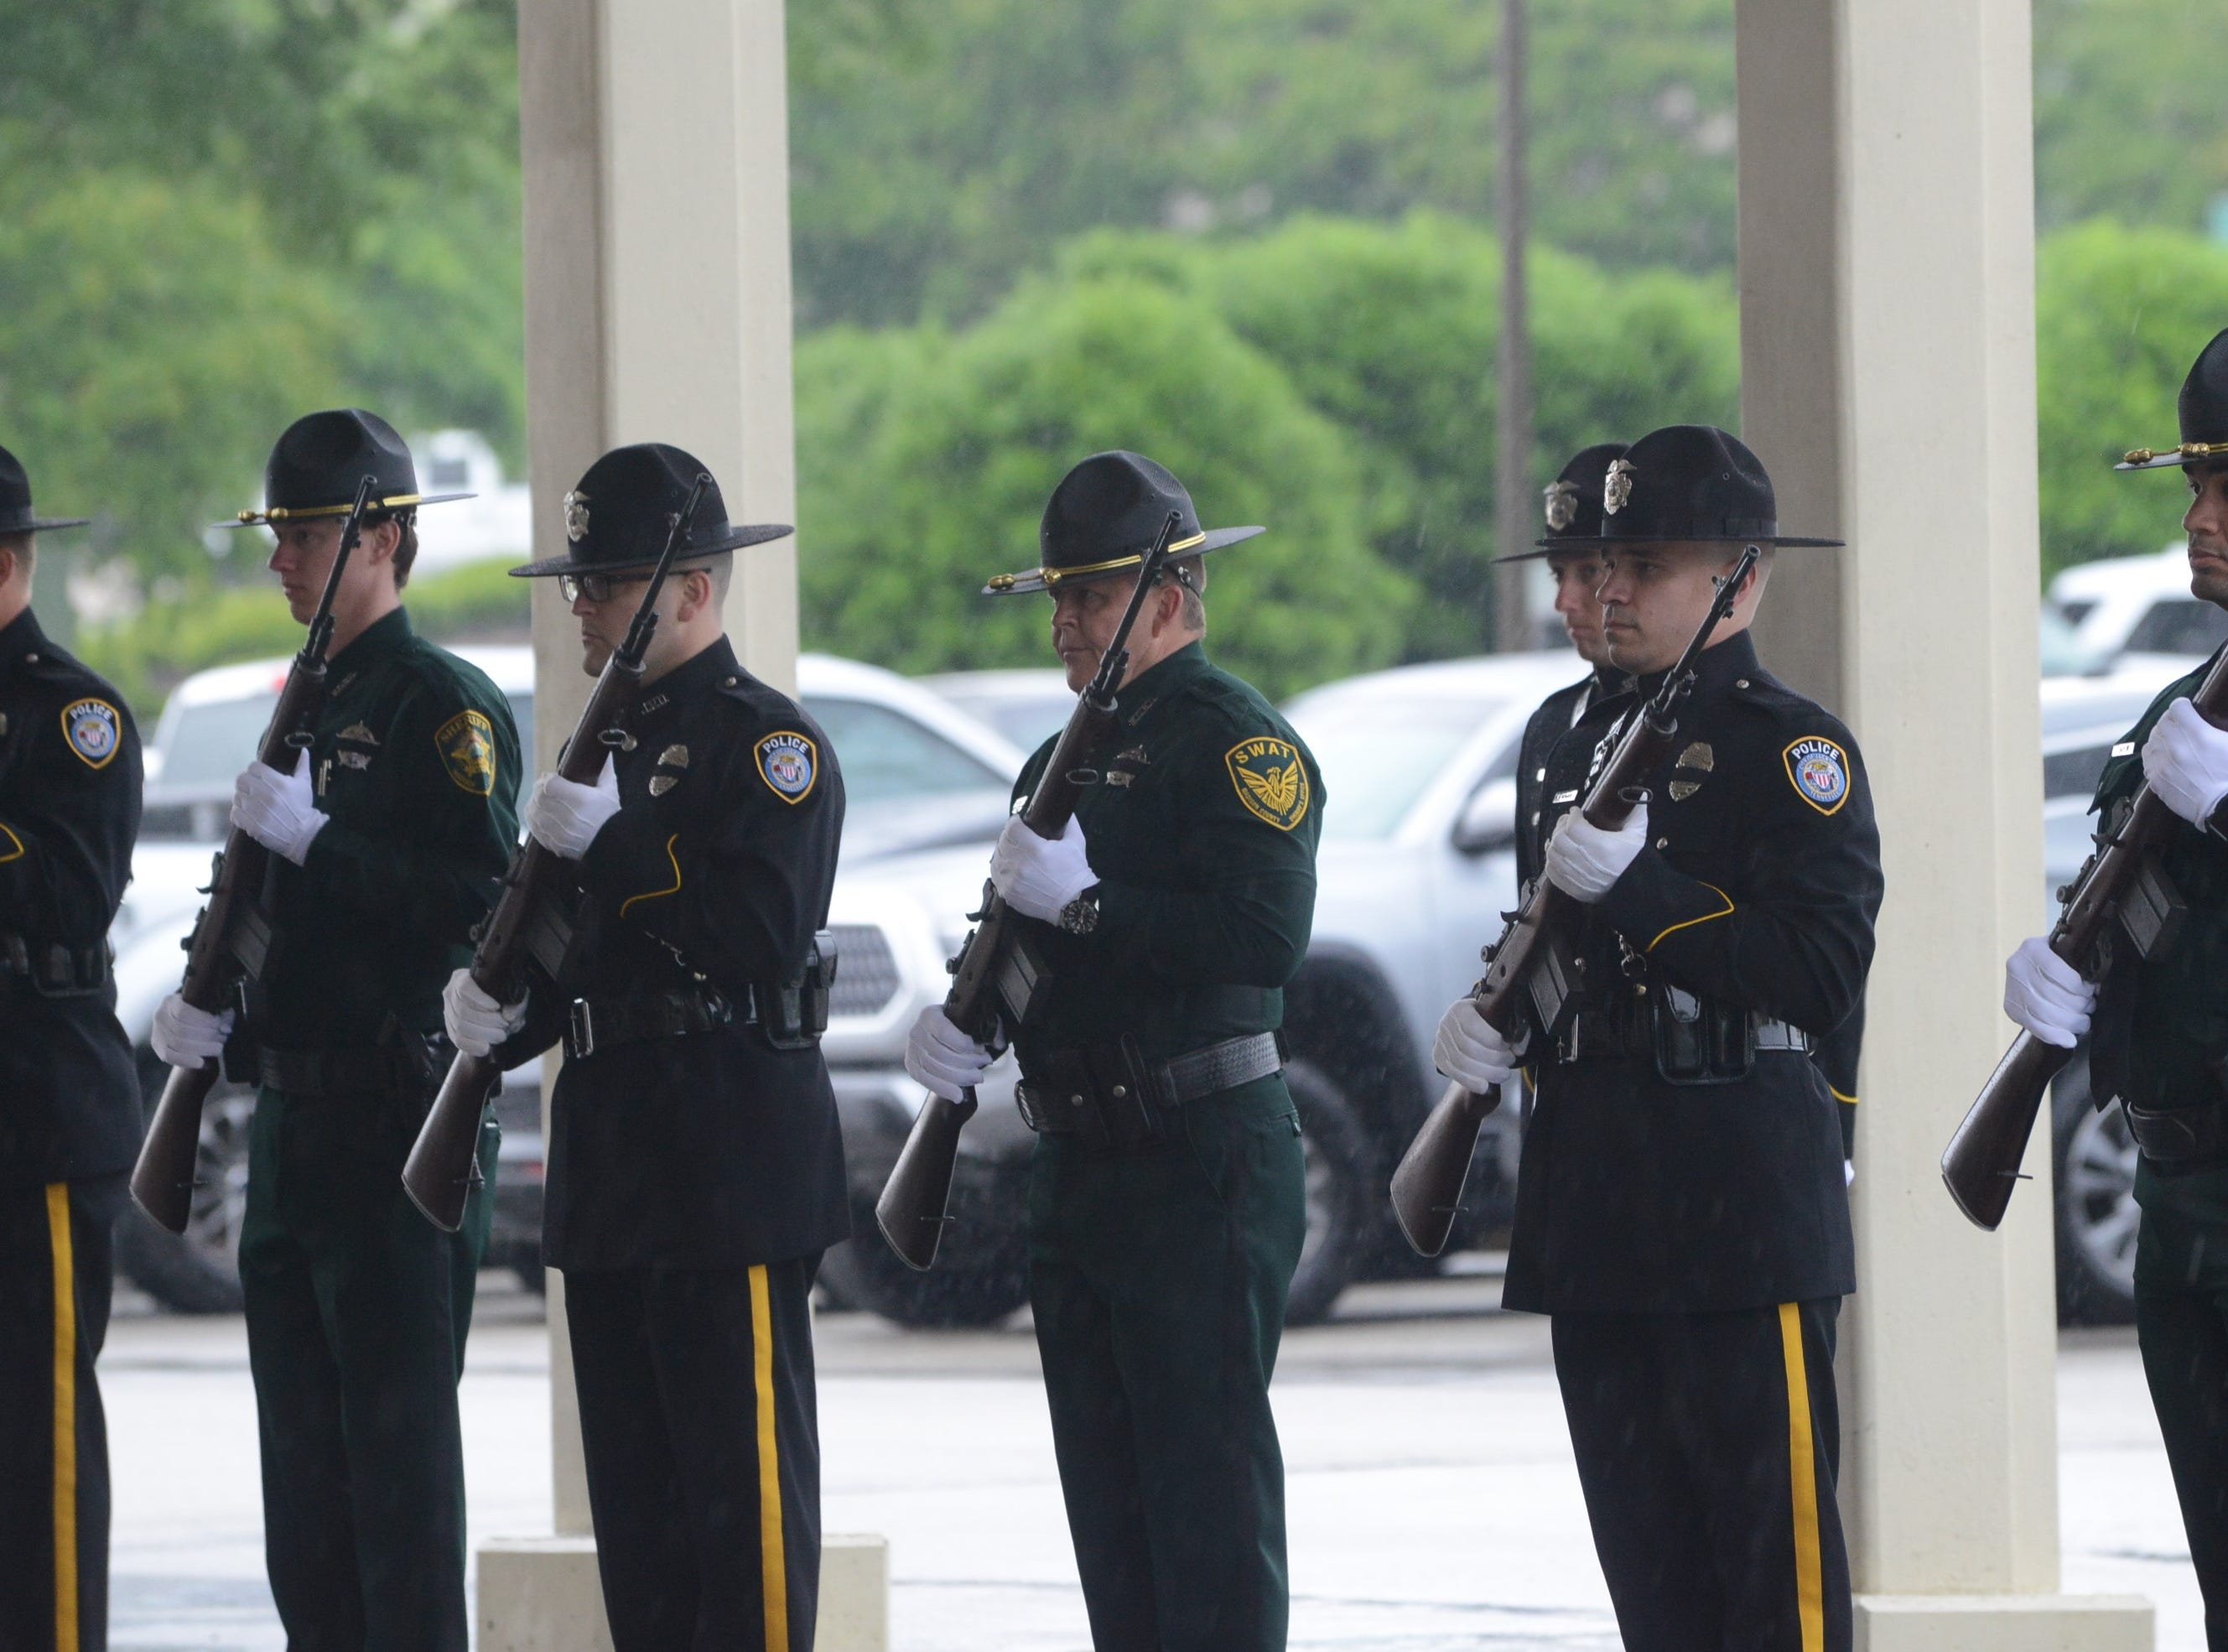 Law enforcement officers stand in formation outside the Carl Perkins Civic Center in Jackson during the National Law Enforcement Memorial Service on Wednesday, May 15, 2019.